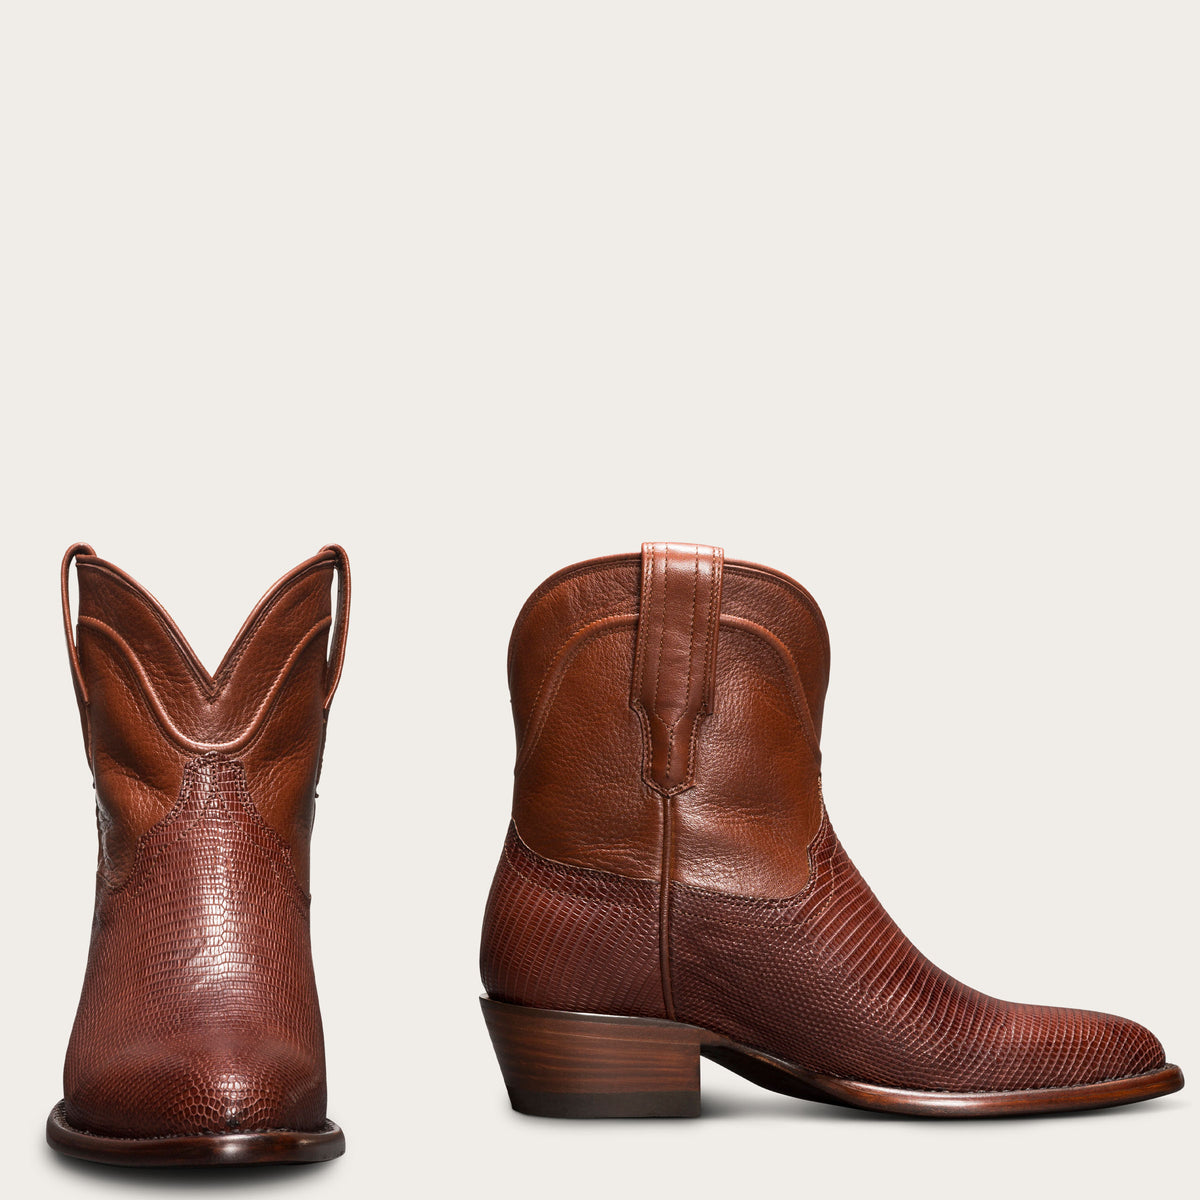 Western Booties - Cowboy Ankle Boots